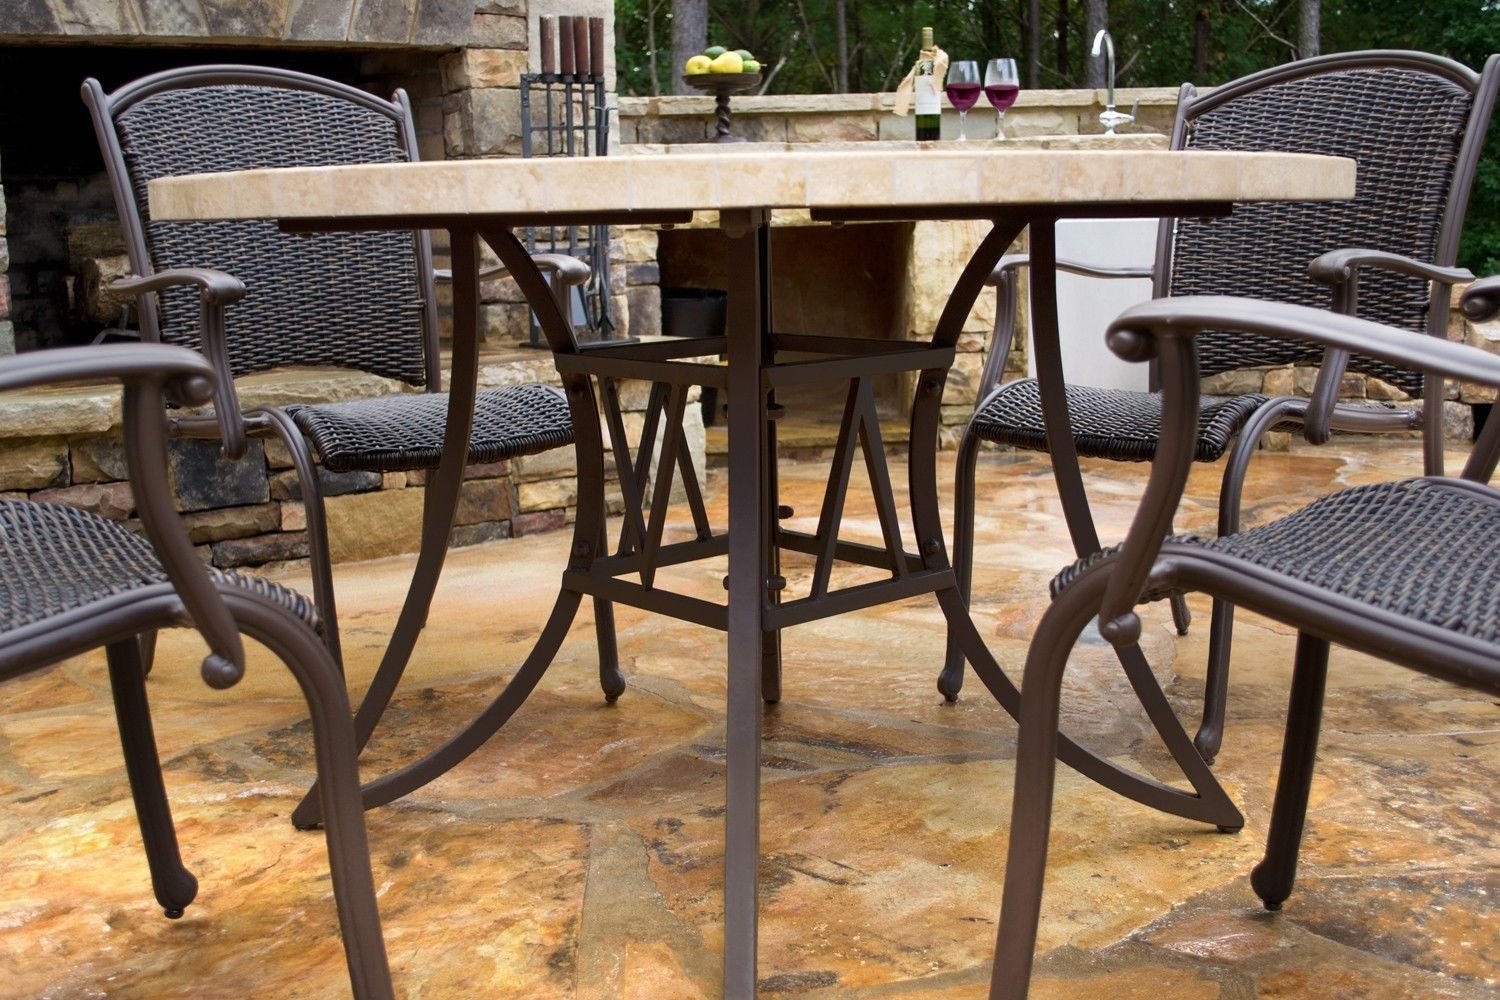 #47 - 5 Piece Outdoor Patio Garden Furniture Dining Table and Chairs Set